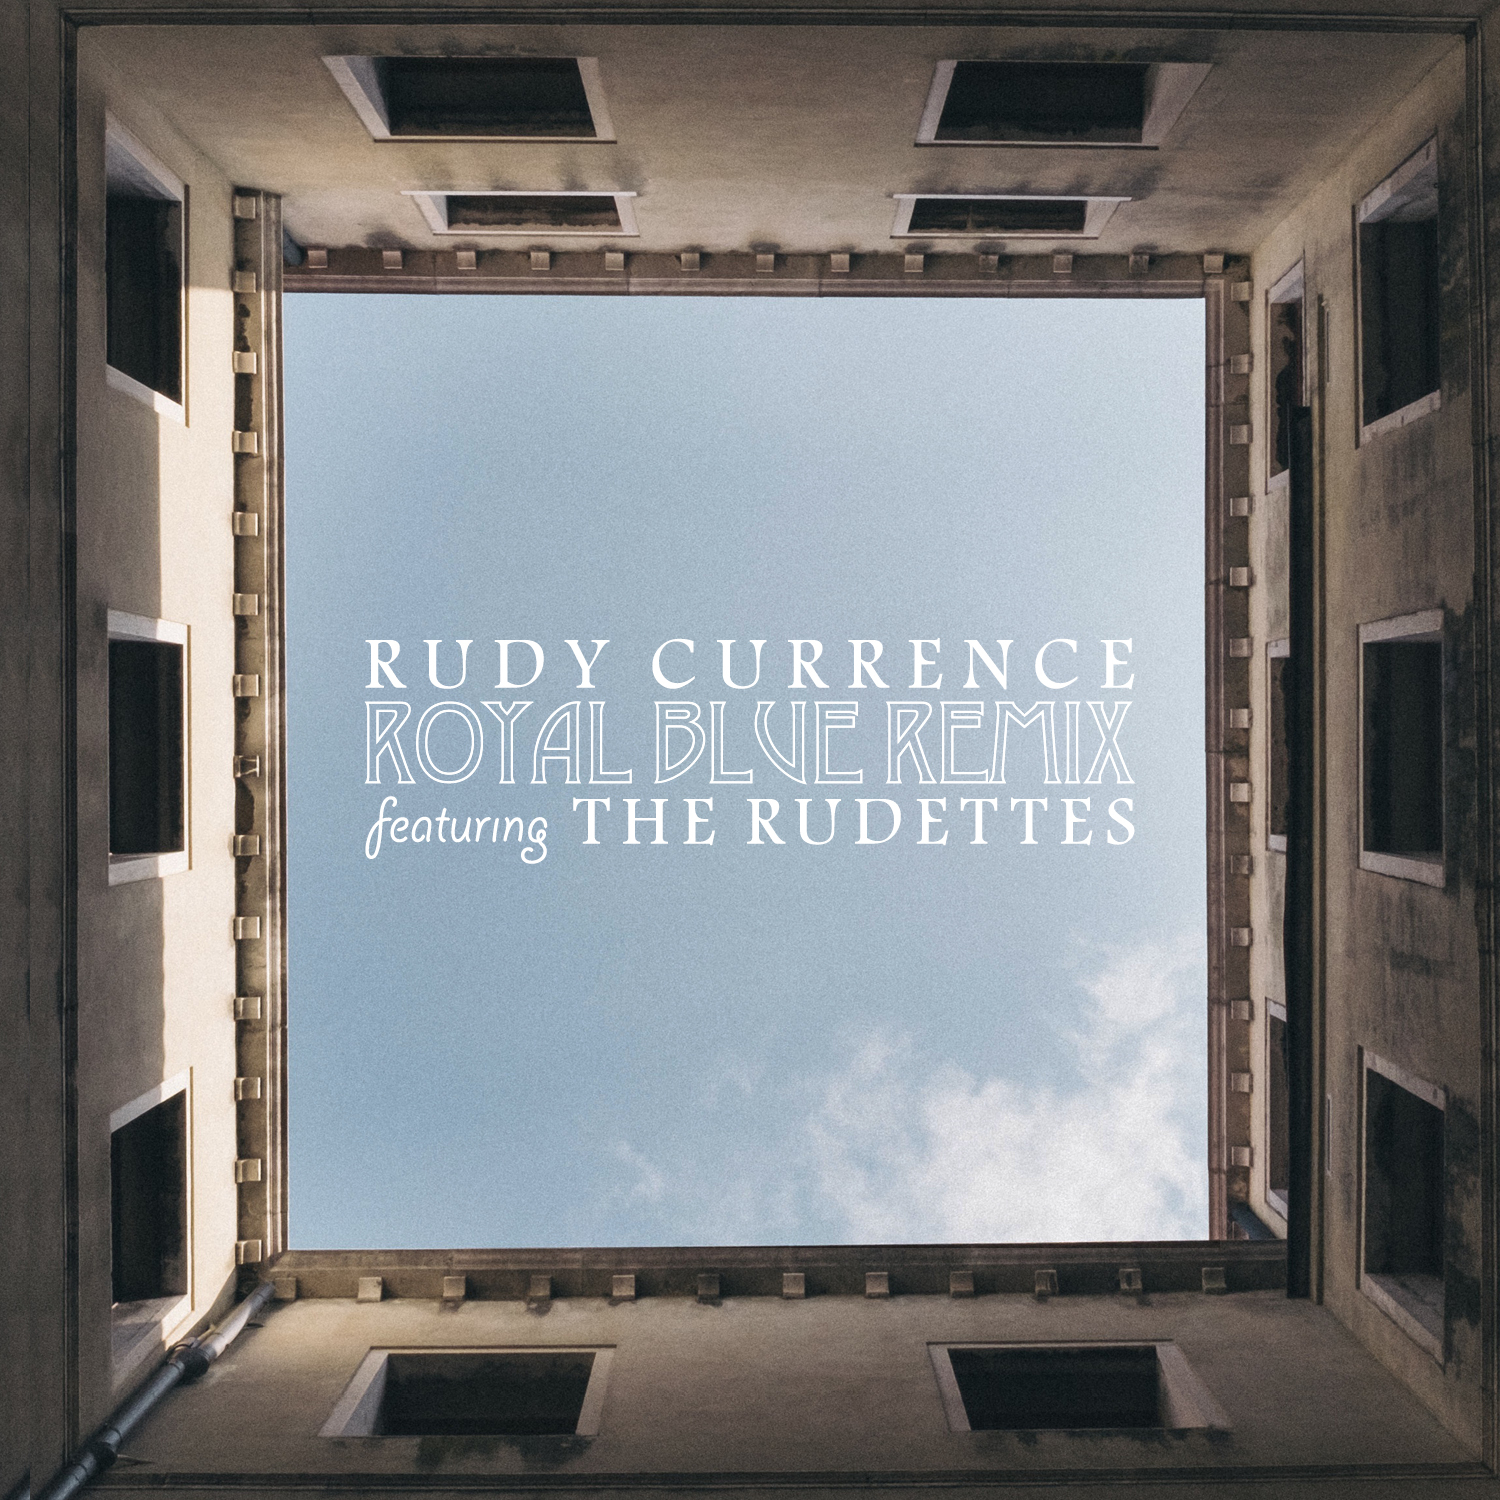 Rudy Currence Royal Blue Remix